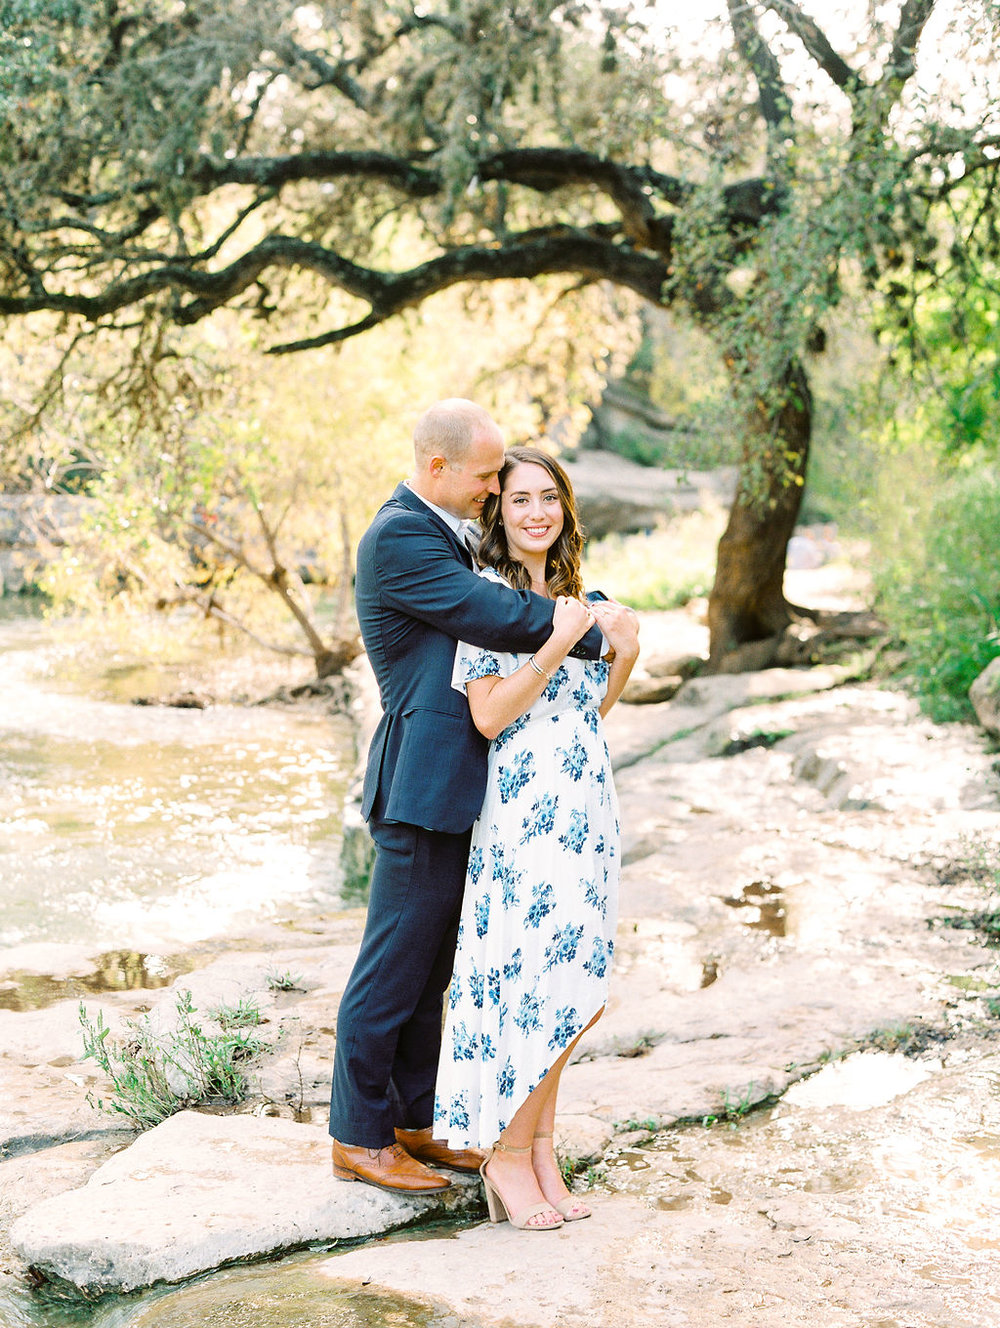 Austin-Film-Engagement-Photographer-adventurous-fine-art-8.jpg